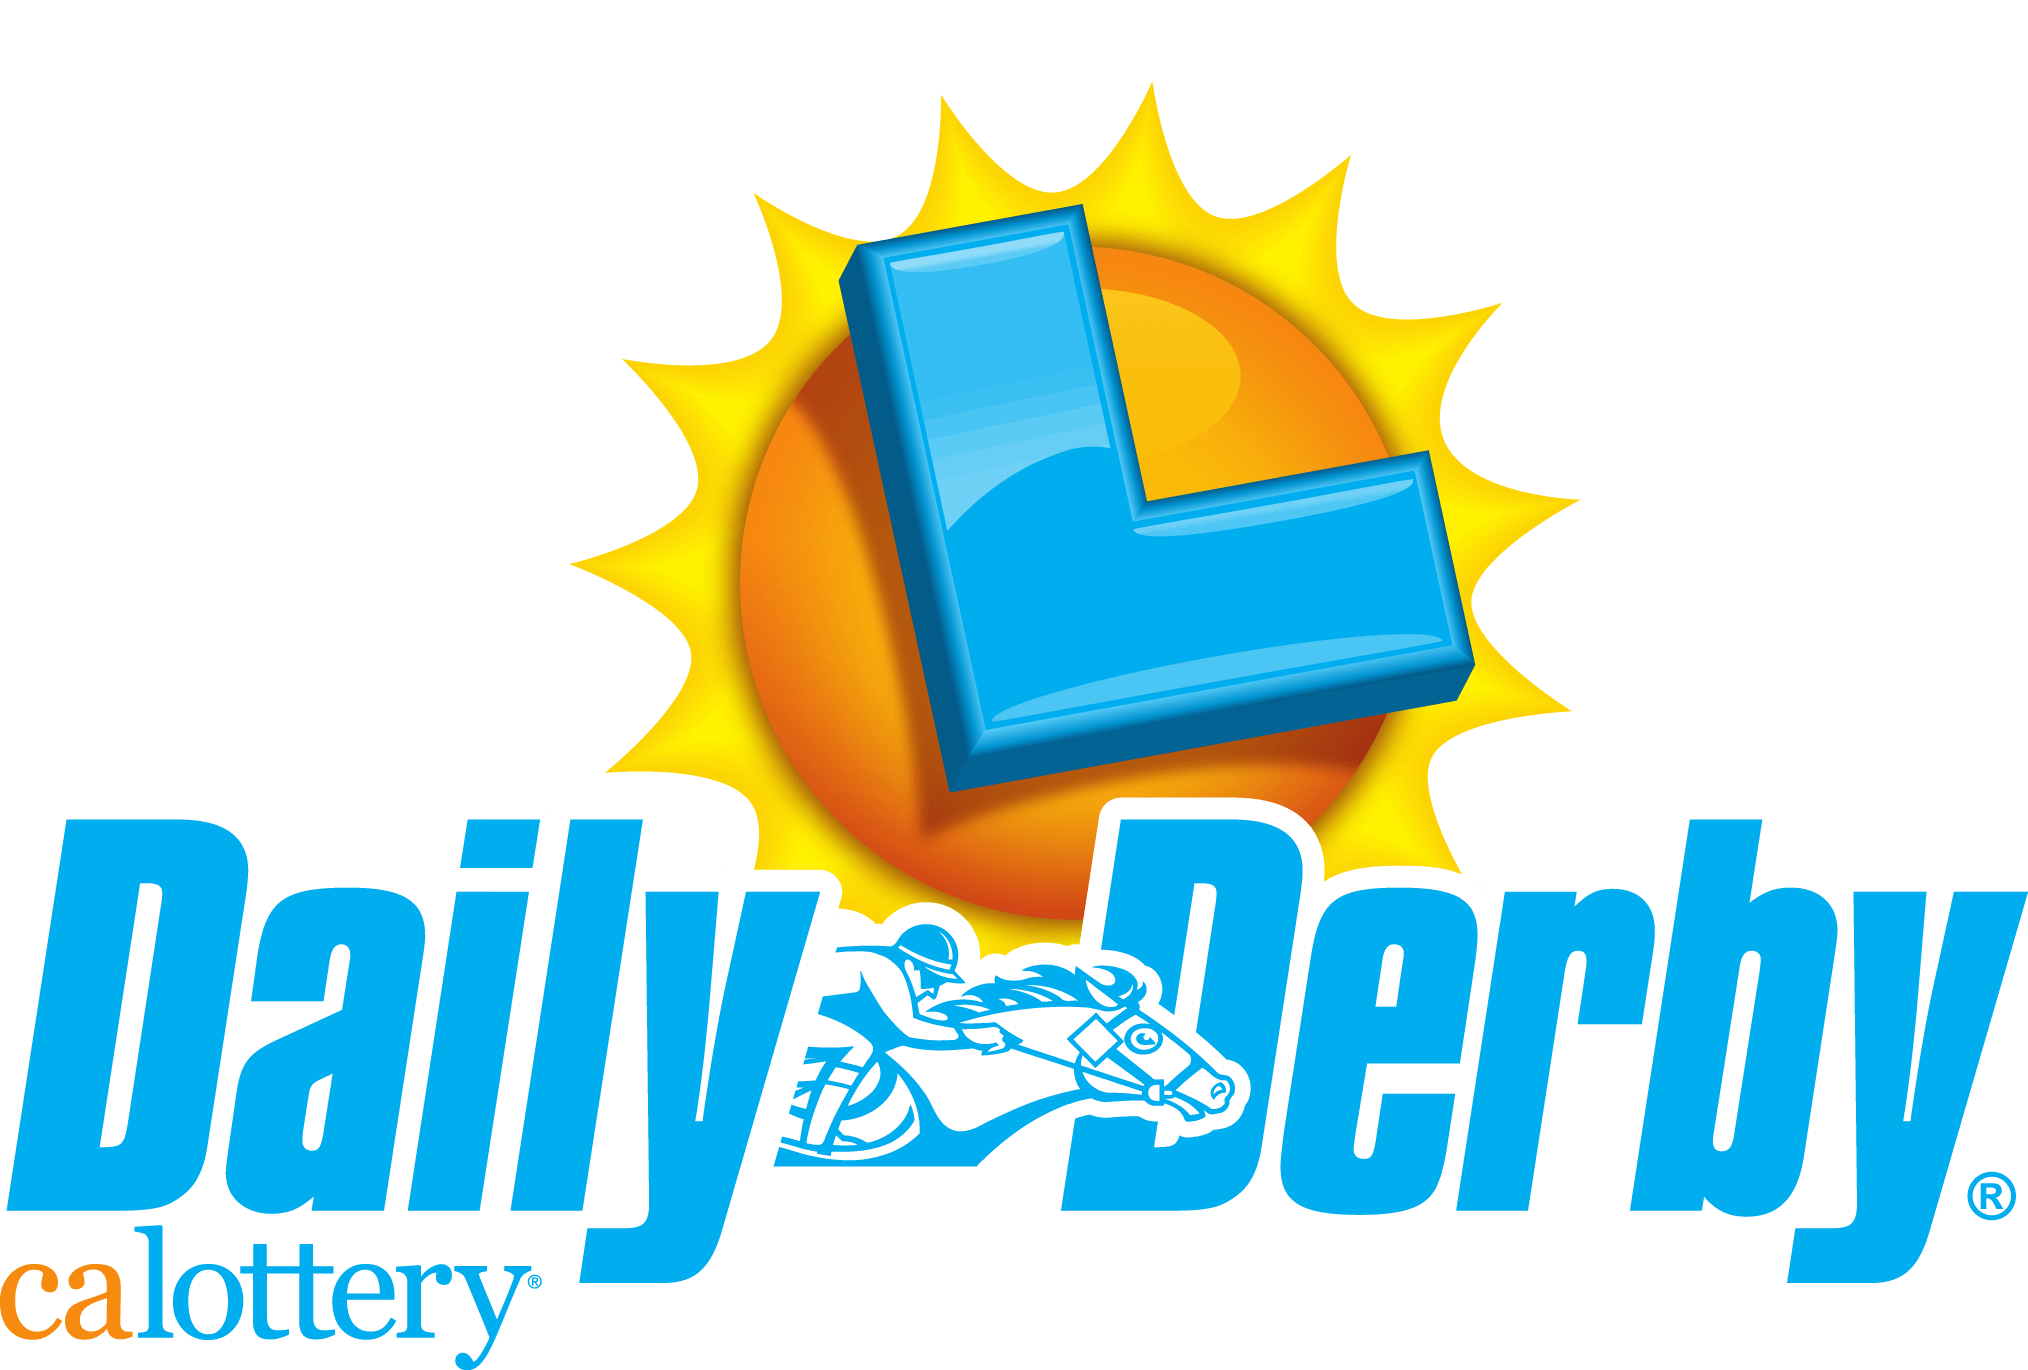 Daily Derby   California State Lottery in 2020   State lottery. Lottery. Derby